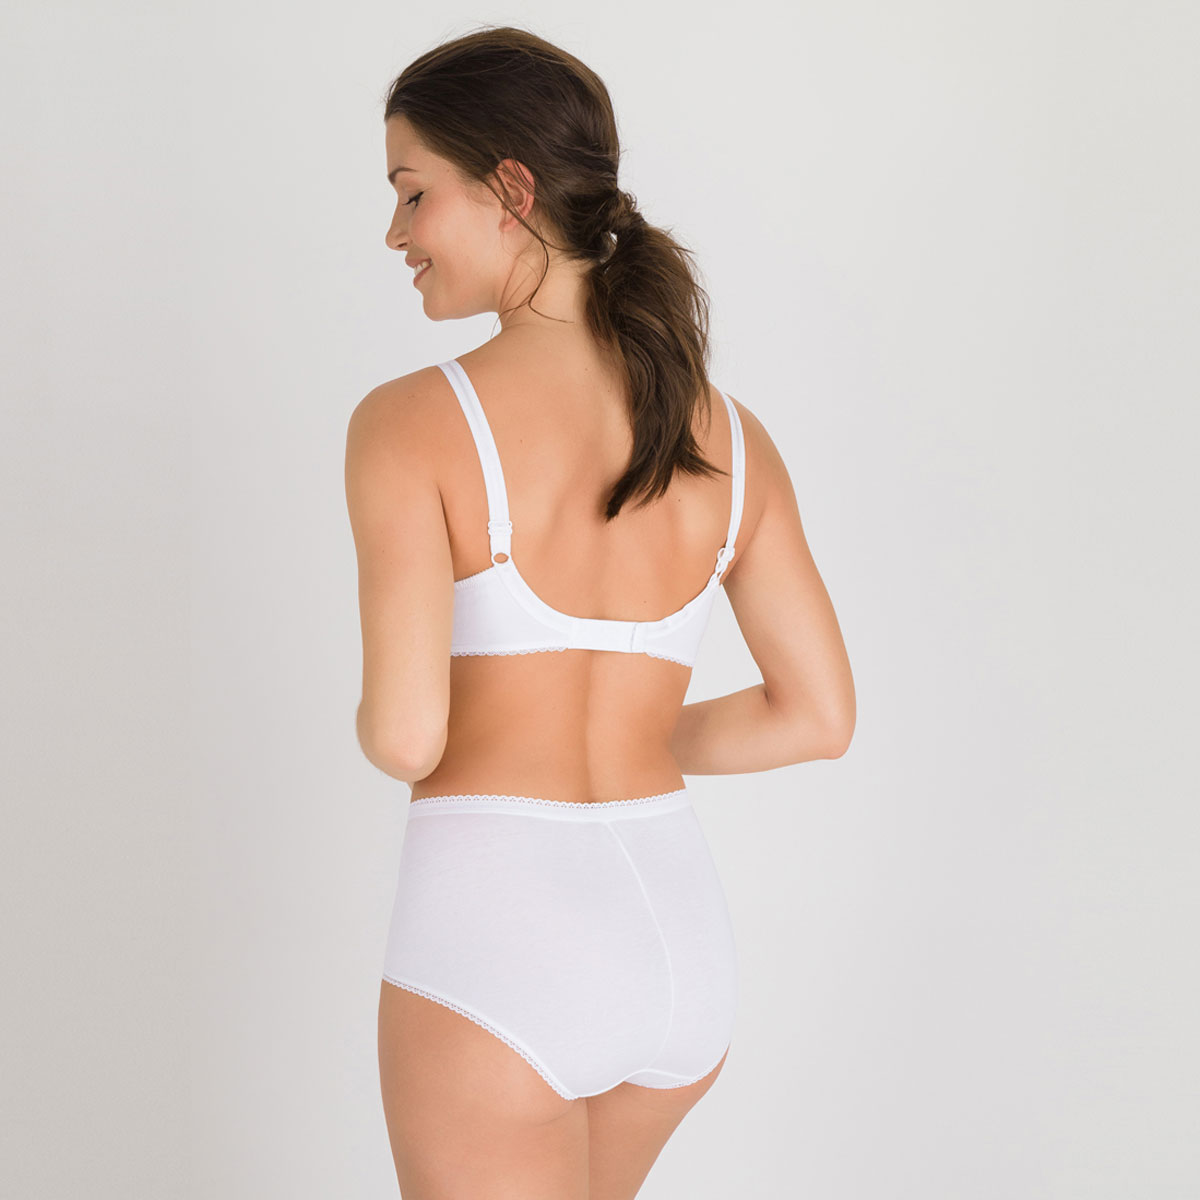 2 Culottes Maxi blanches – Coton & Dentelle-PLAYTEX